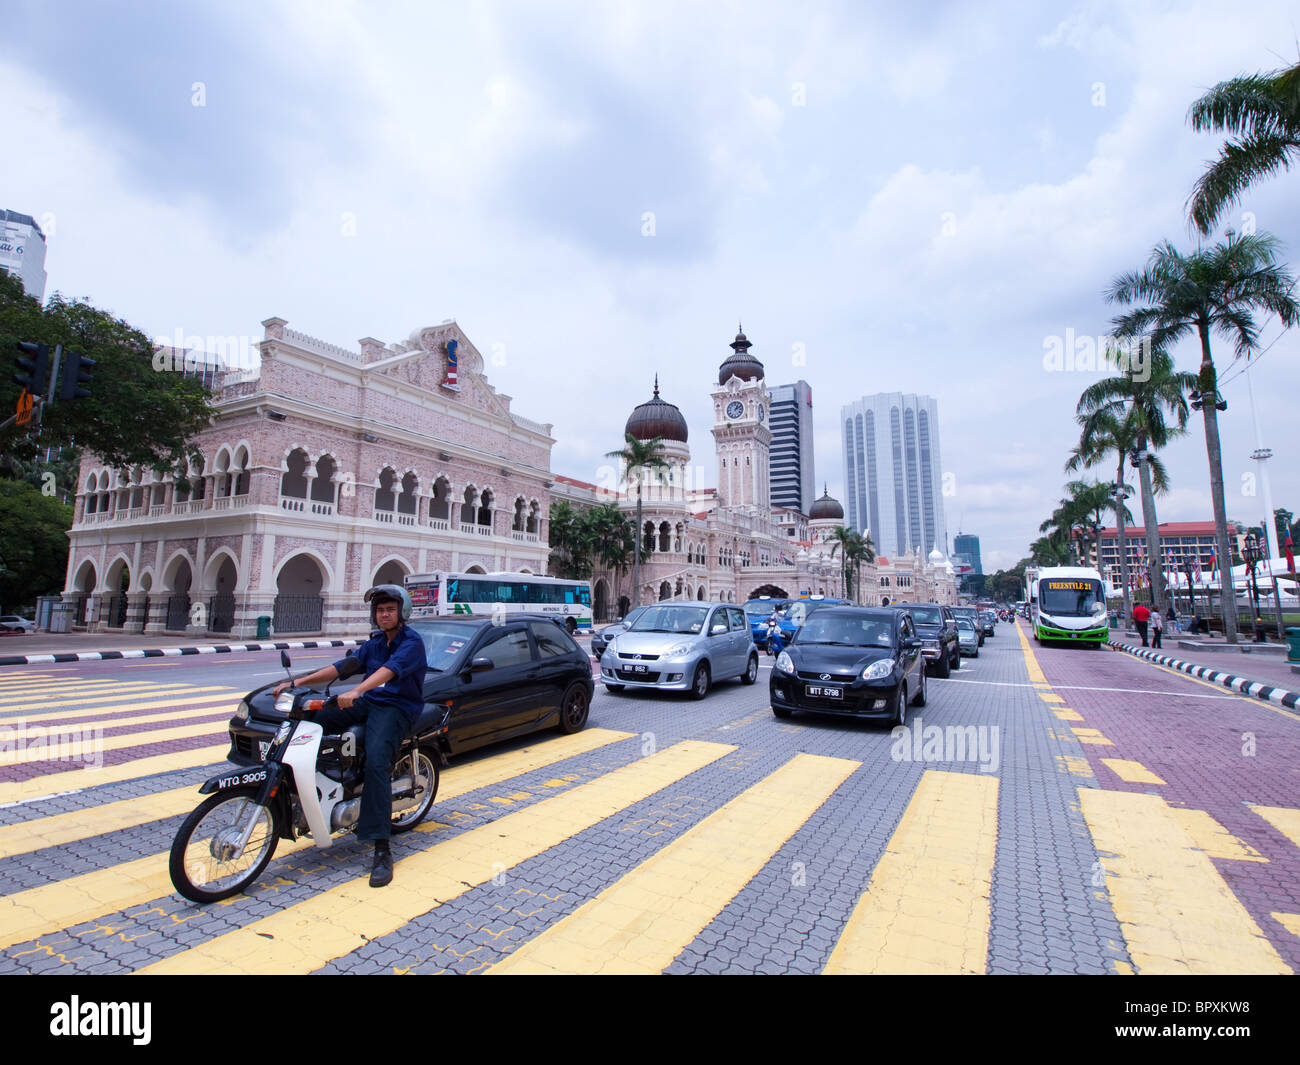 A busy street scene from Kuala Lumpur, Malaysia, with the Sultan Abdul Samad Building in the background. - Stock Image